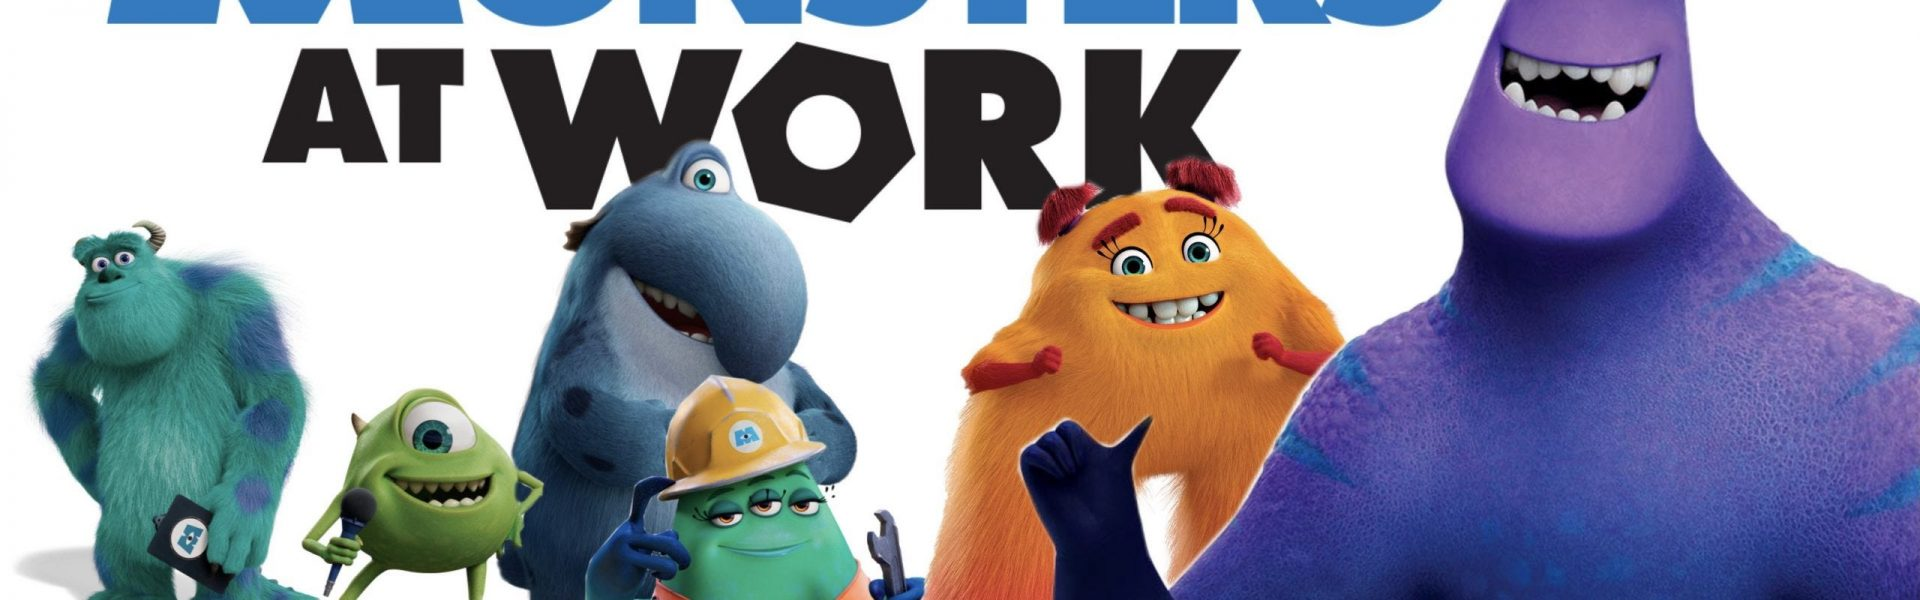 Monsters at Work 2021 review